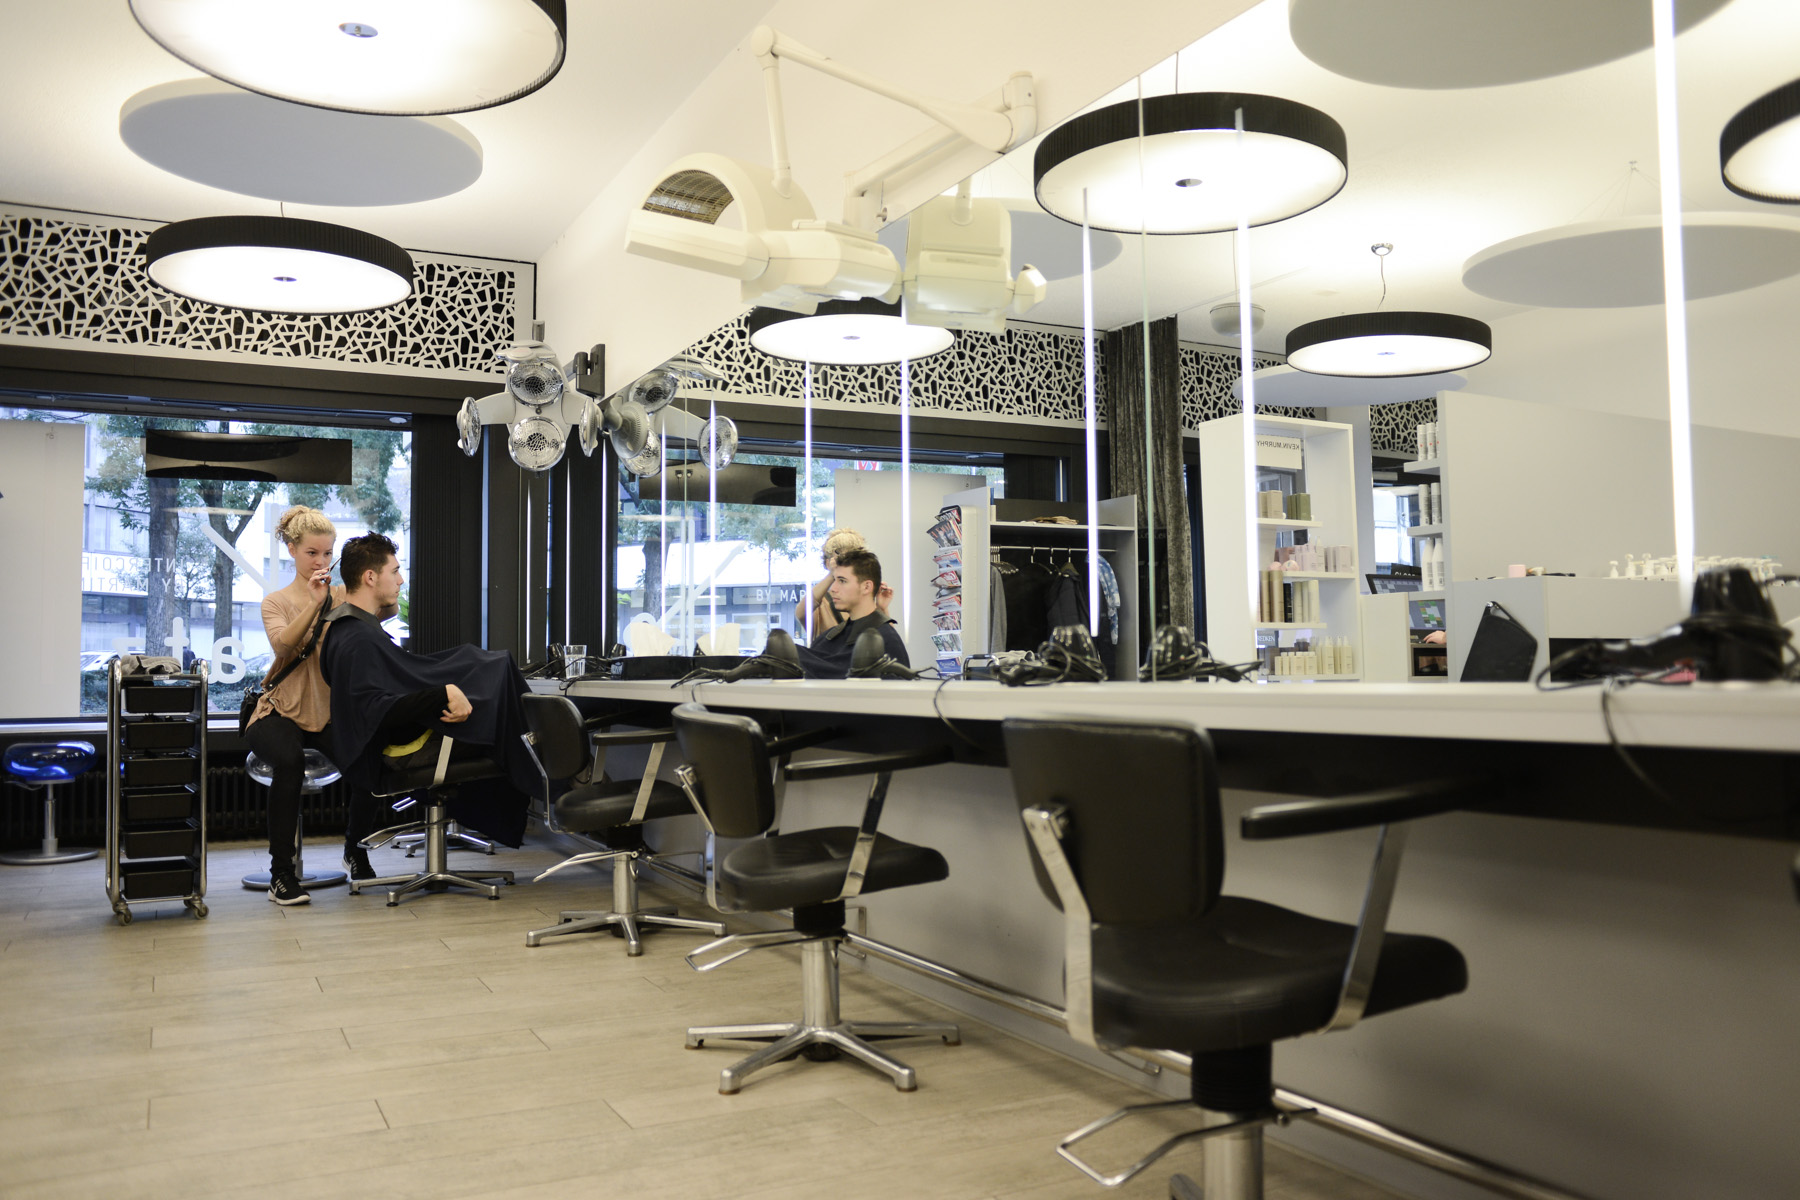 SALON - Coiffeur in Zürich - Raddatz by Martina